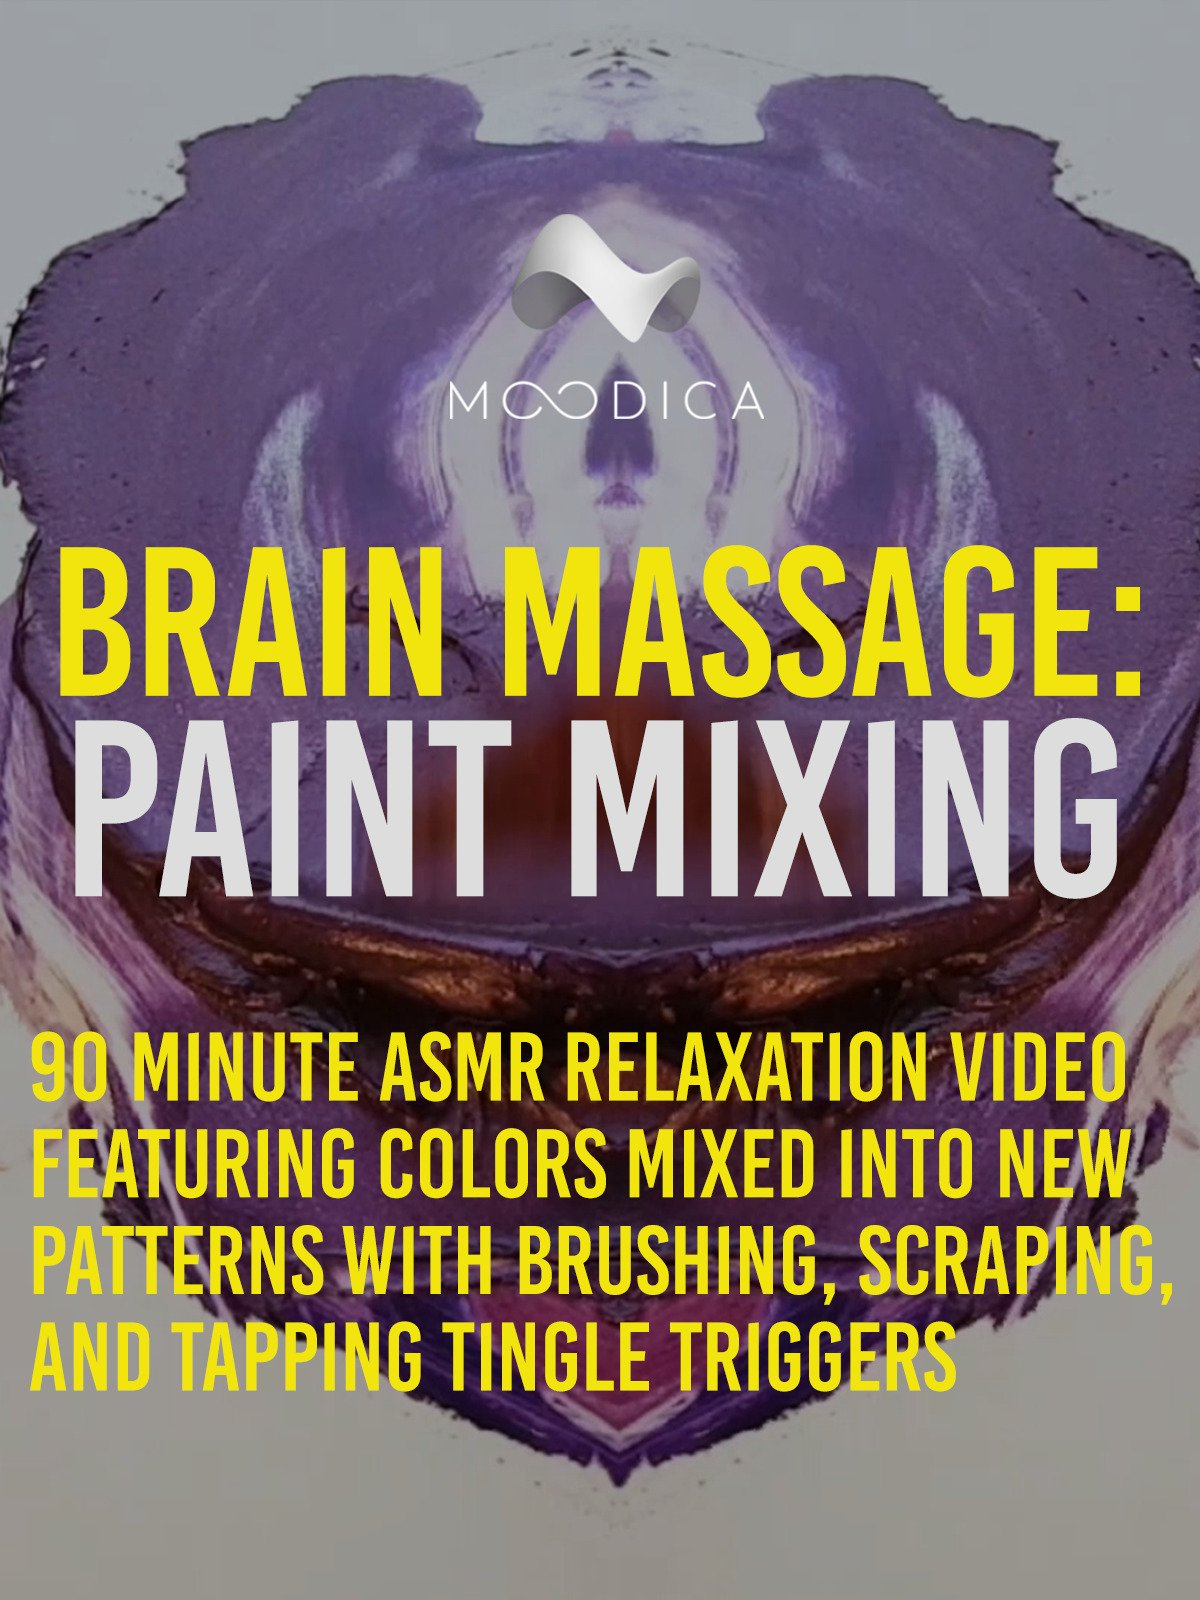 Brain Massage: Paint Mixing: 90 Minute ASMR Relaxation Video Featuring Colors Mixed Into New Patterns With Brushing, Scraping, and Tapping Tingle Triggers